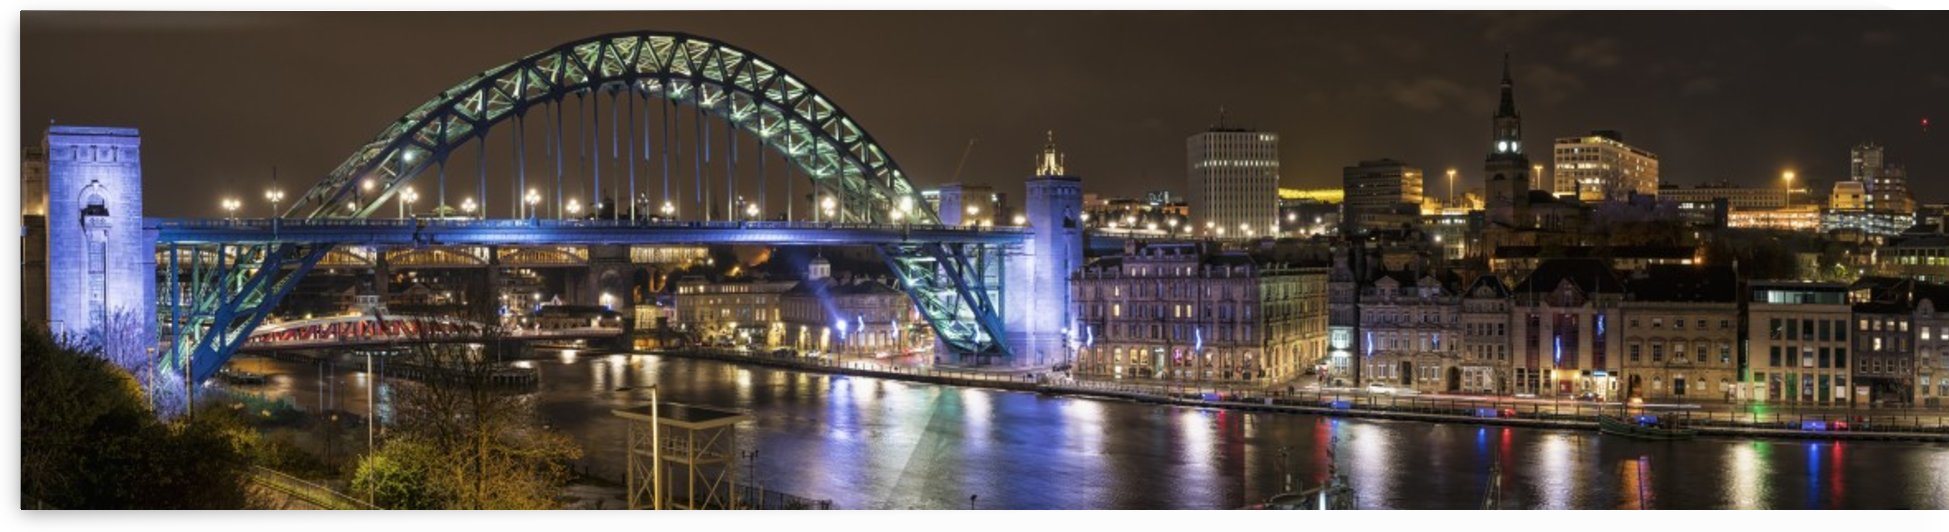 Illuminated Tyne bridge over the River Tyne at nighttime; Newcastle, Tyne and Wear, England by PacificStock